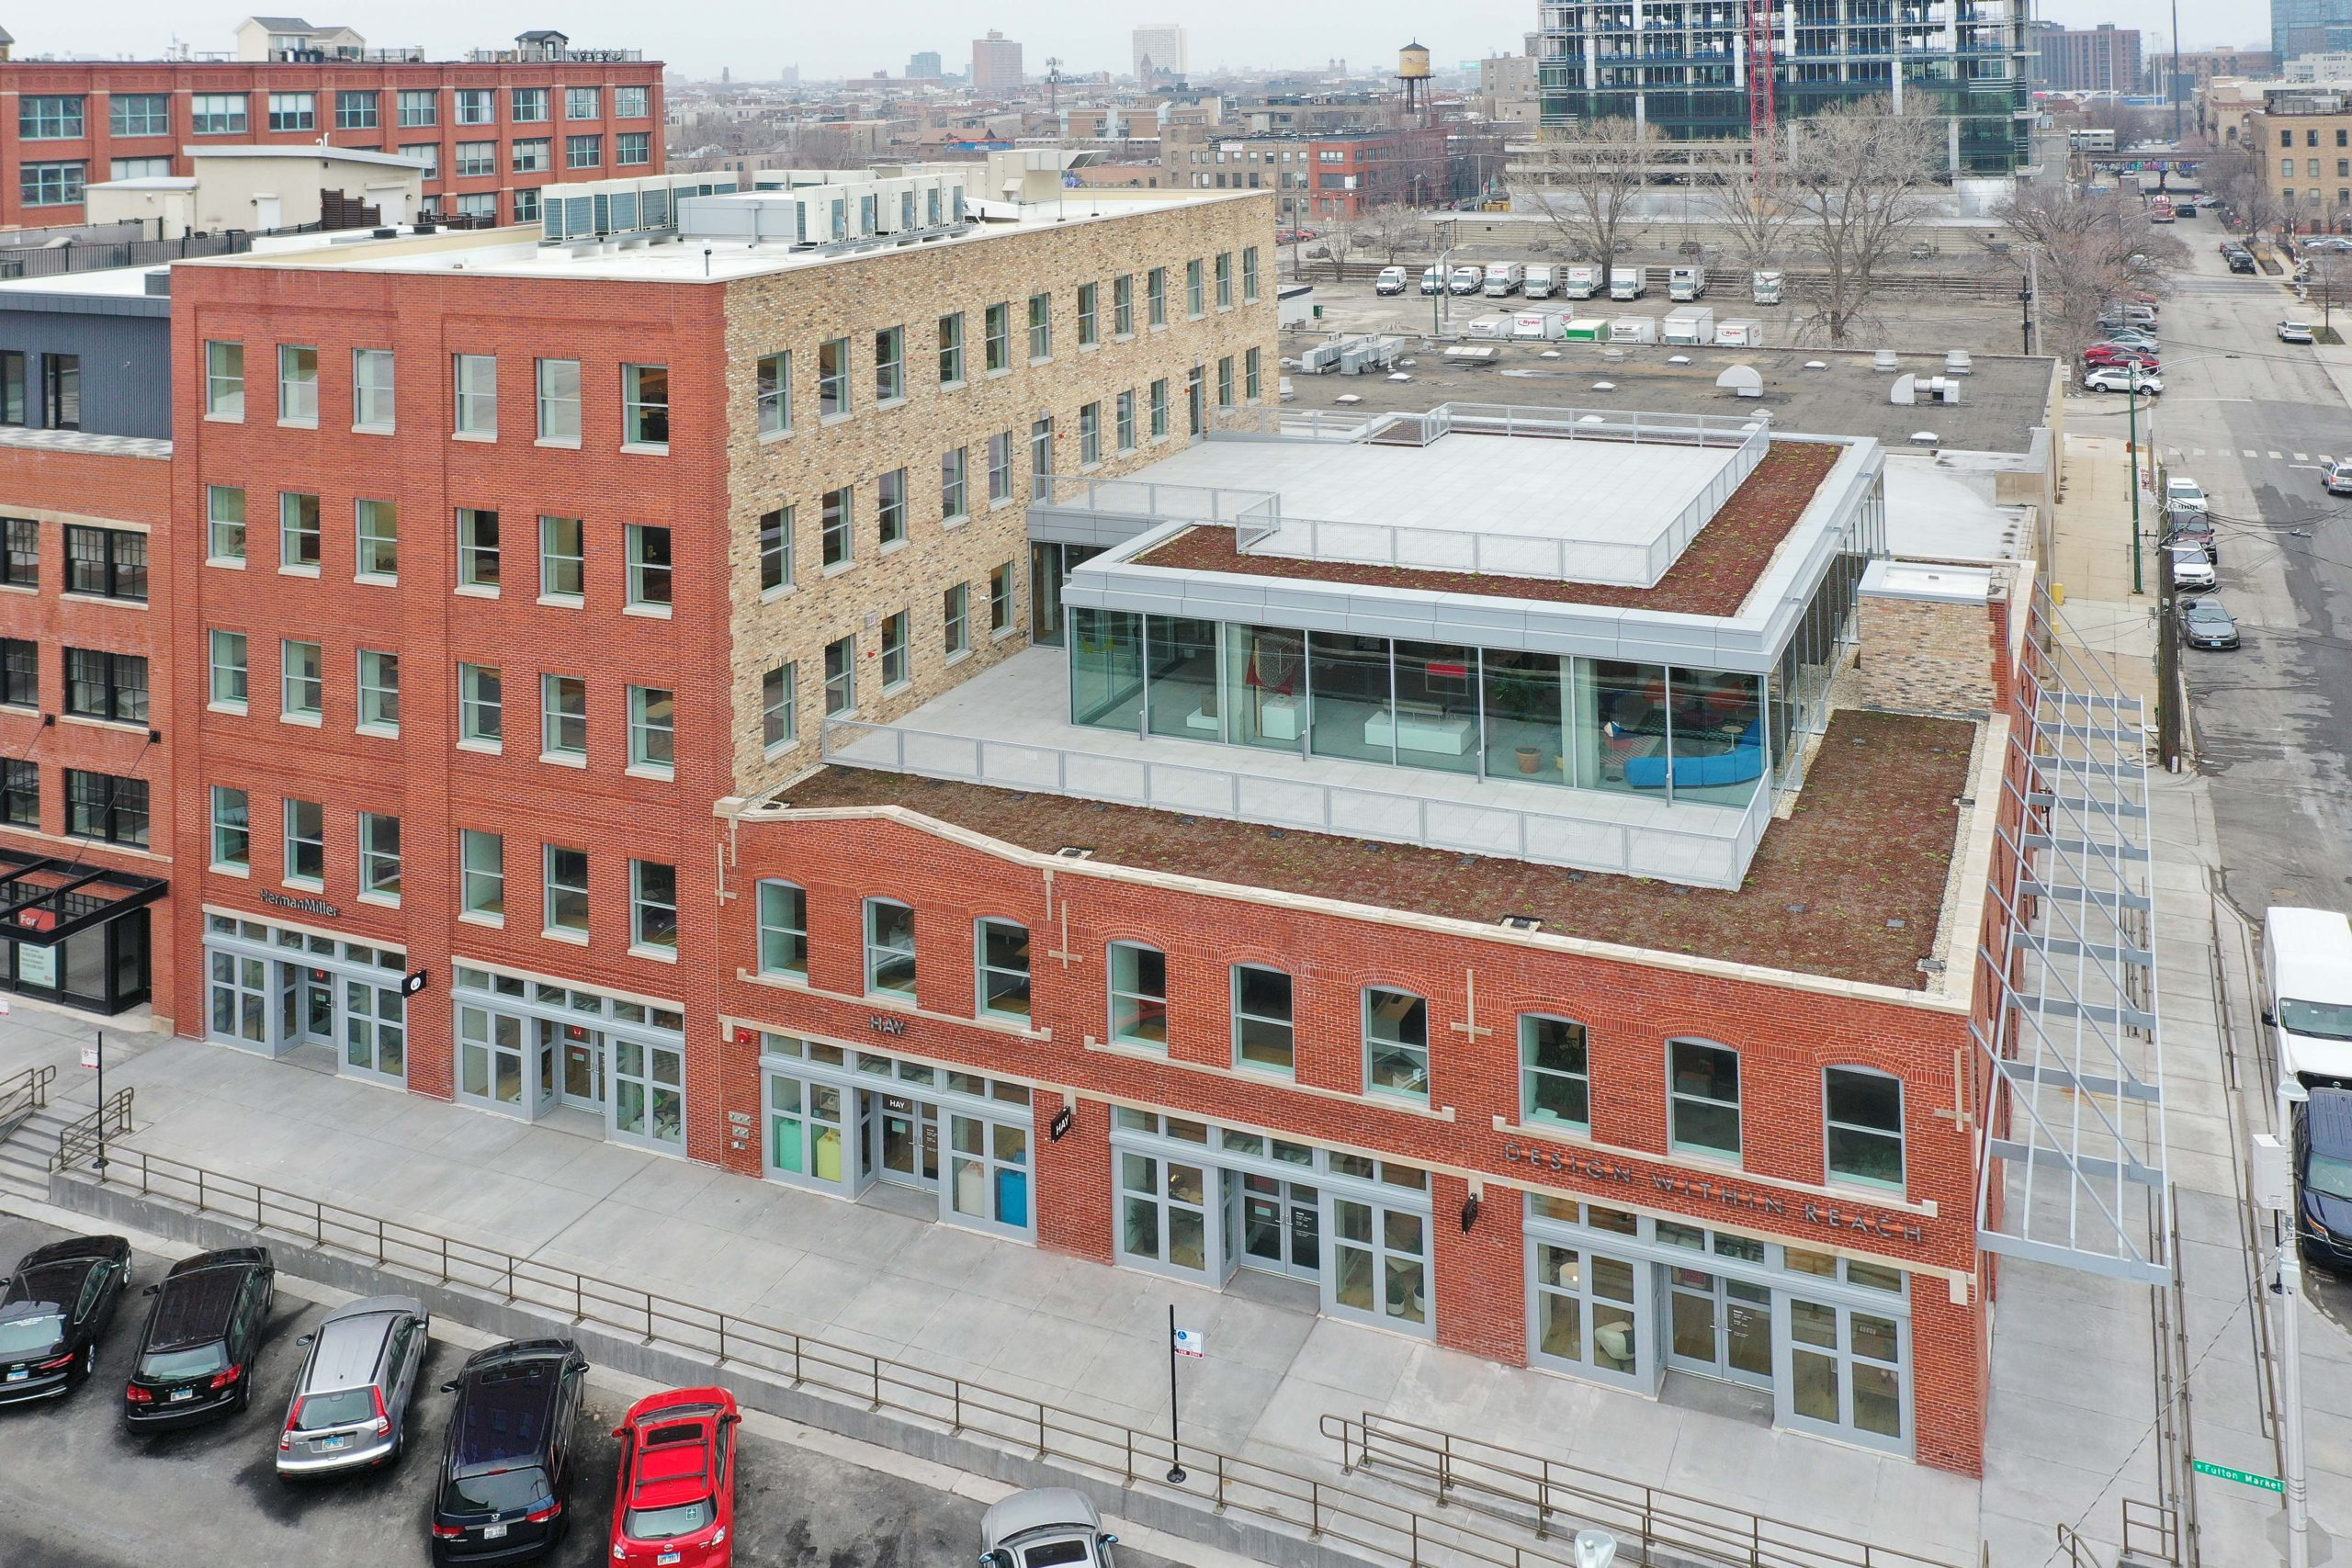 Skender Completes Construction at 1100 W. Fulton for Fulton St. Companies and Herman Miller